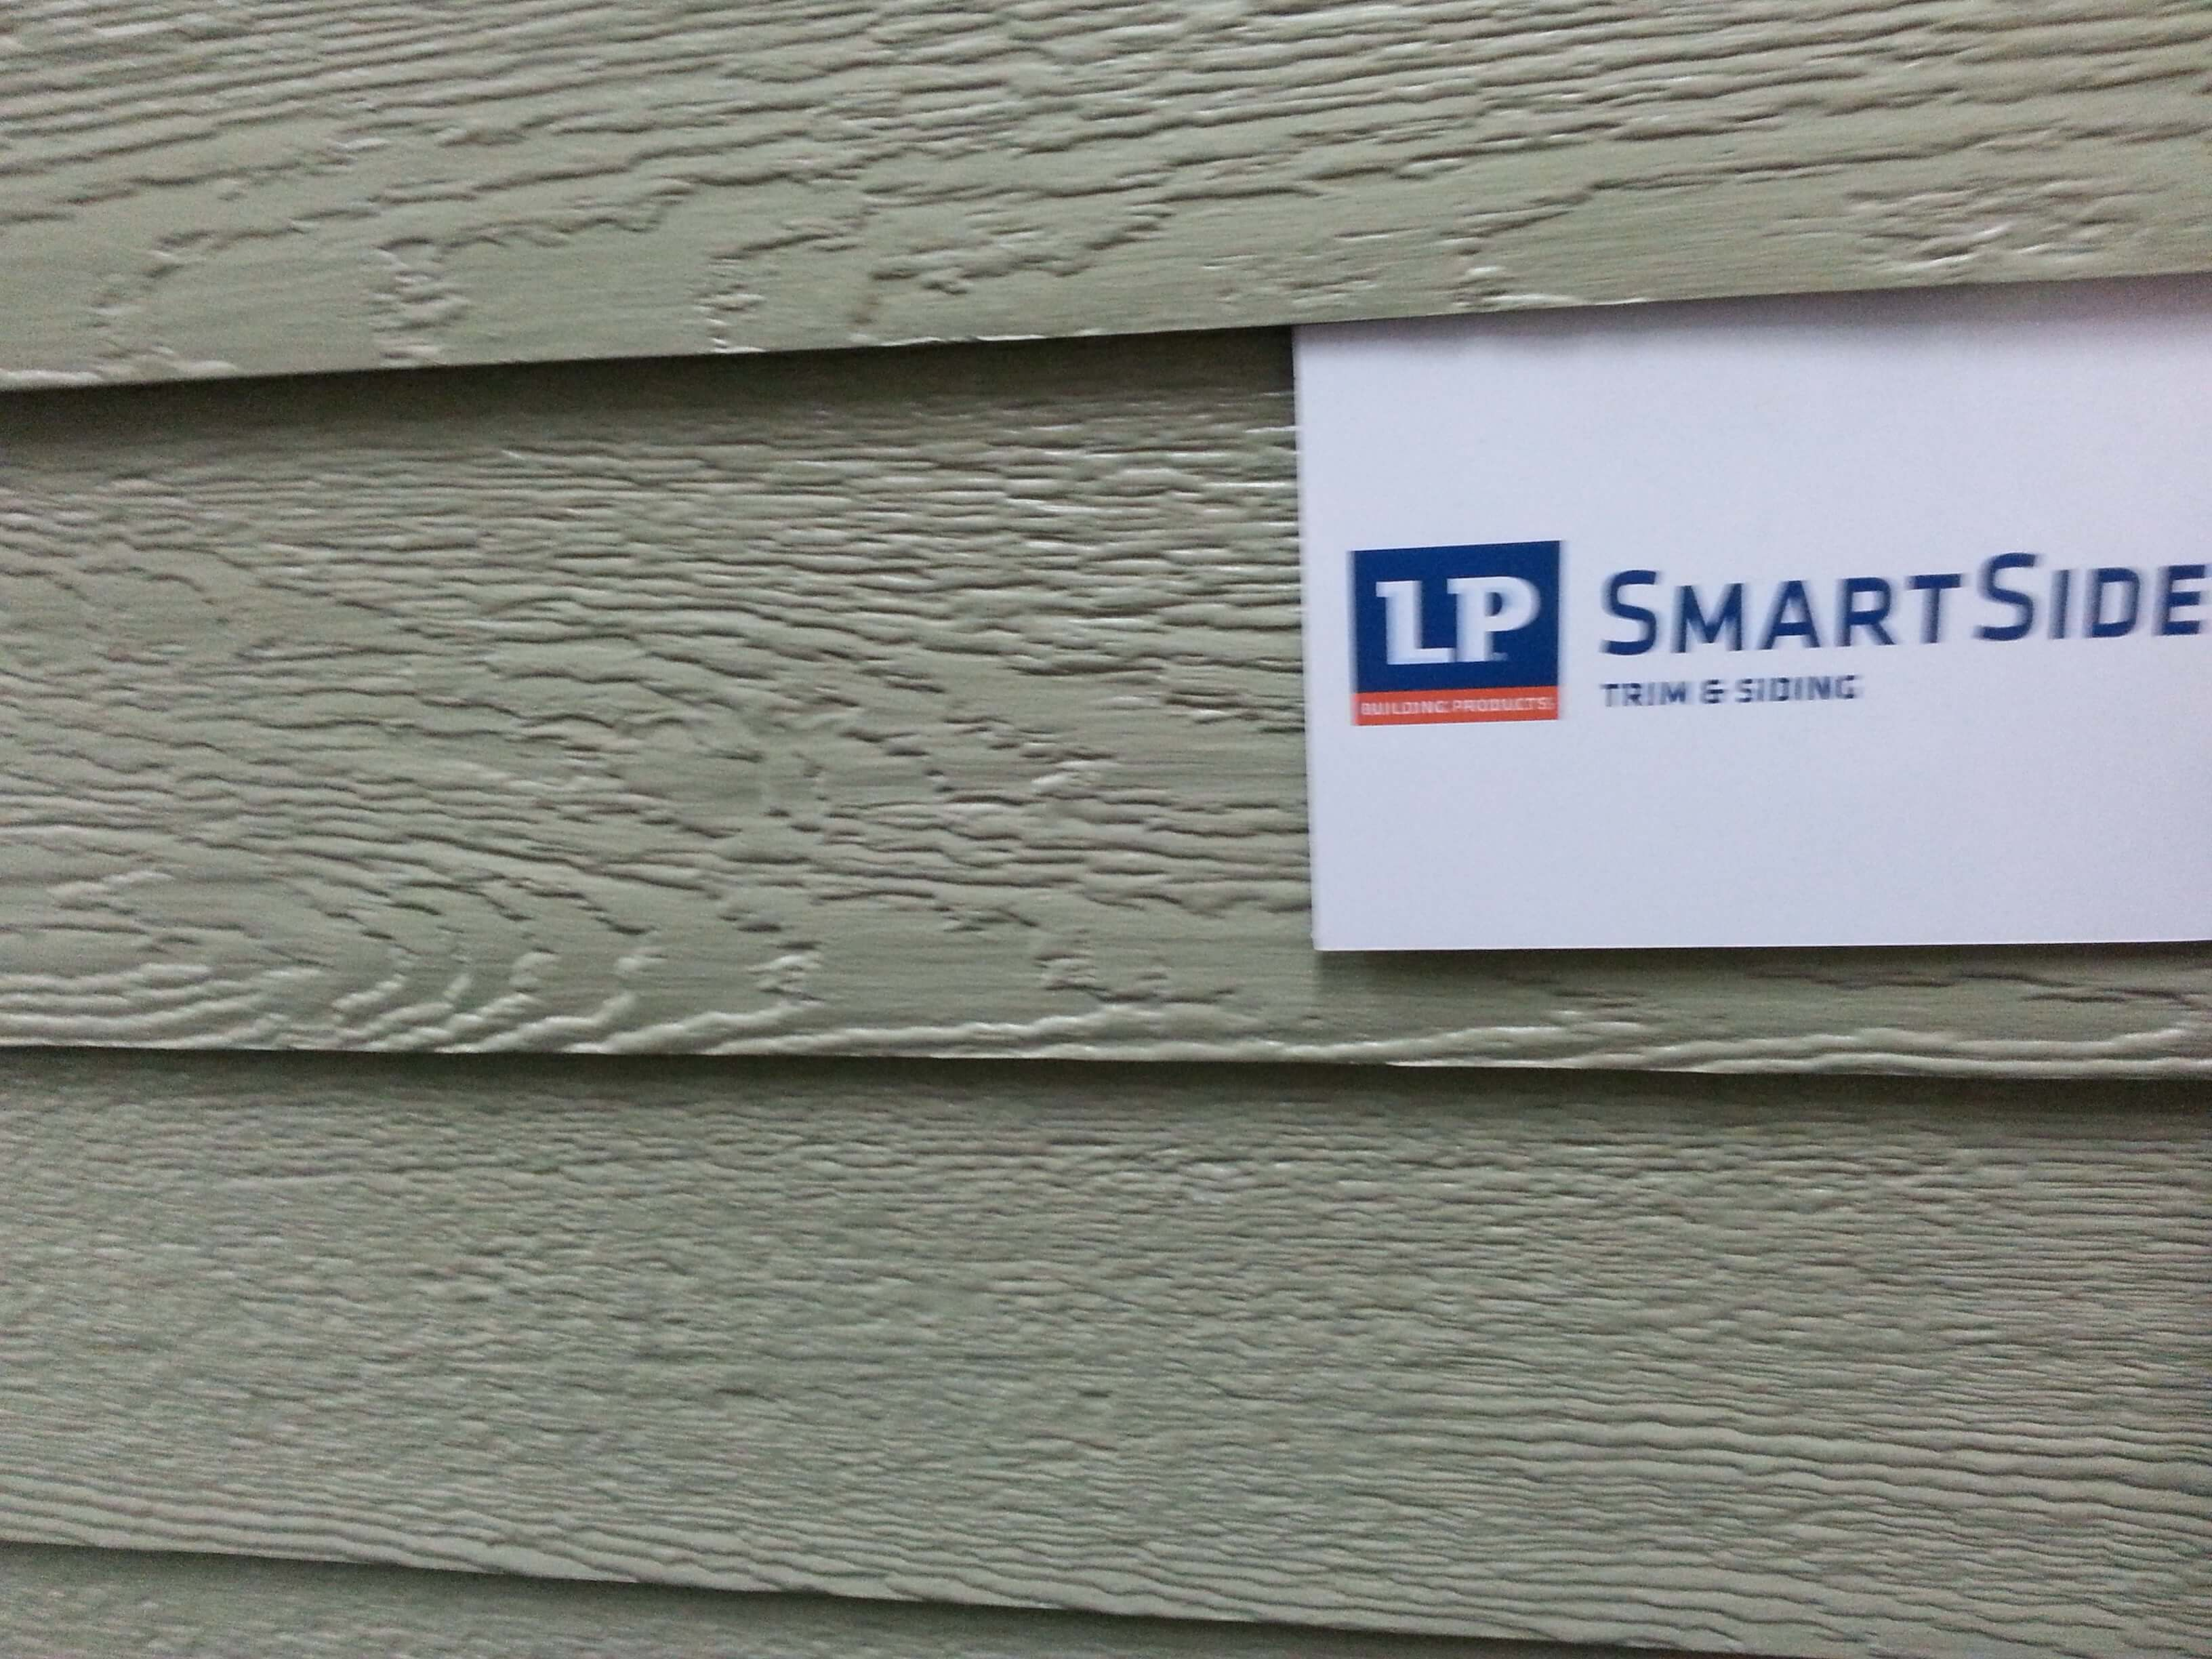 Siding replacement wars james hardie vs lp smartside in for Lp engineered wood siding